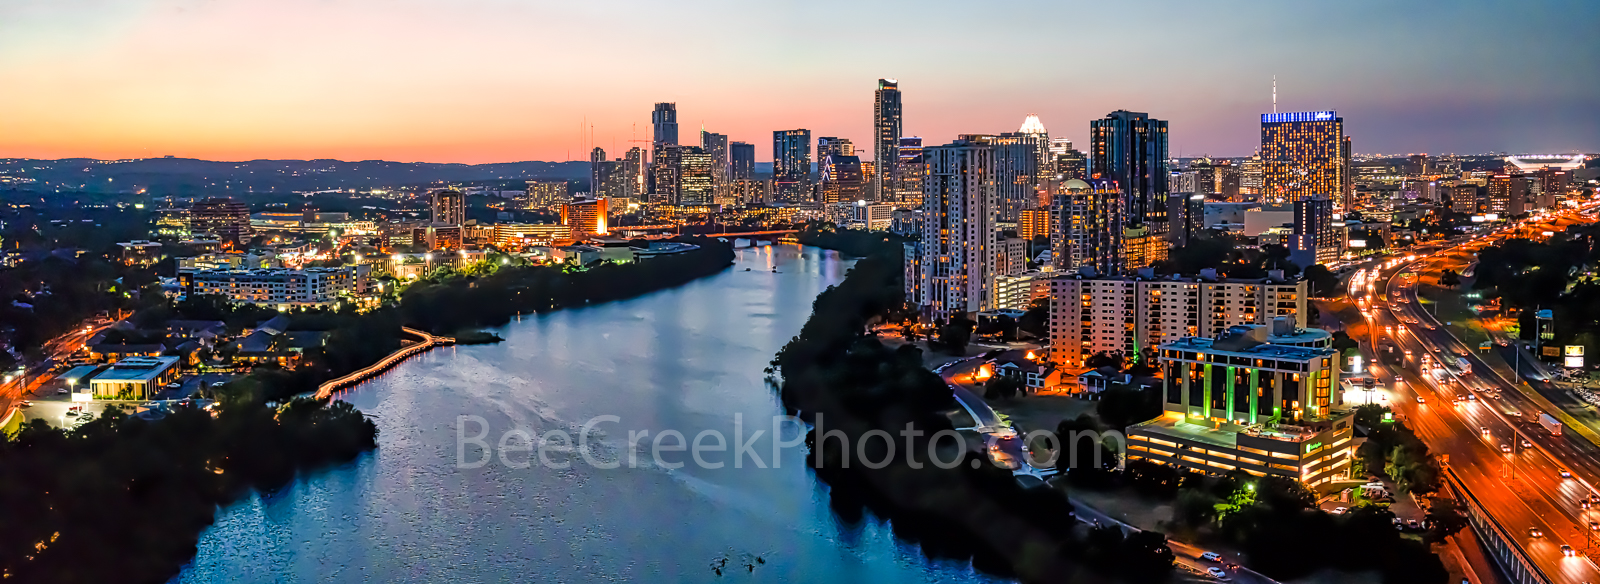 Austin skyline, Austin, skyline, Austin Downtown, dusk, Night, downtown, lady bird lake,  city of austin, image of texas, pics of texas, austin tx, texas, , photo